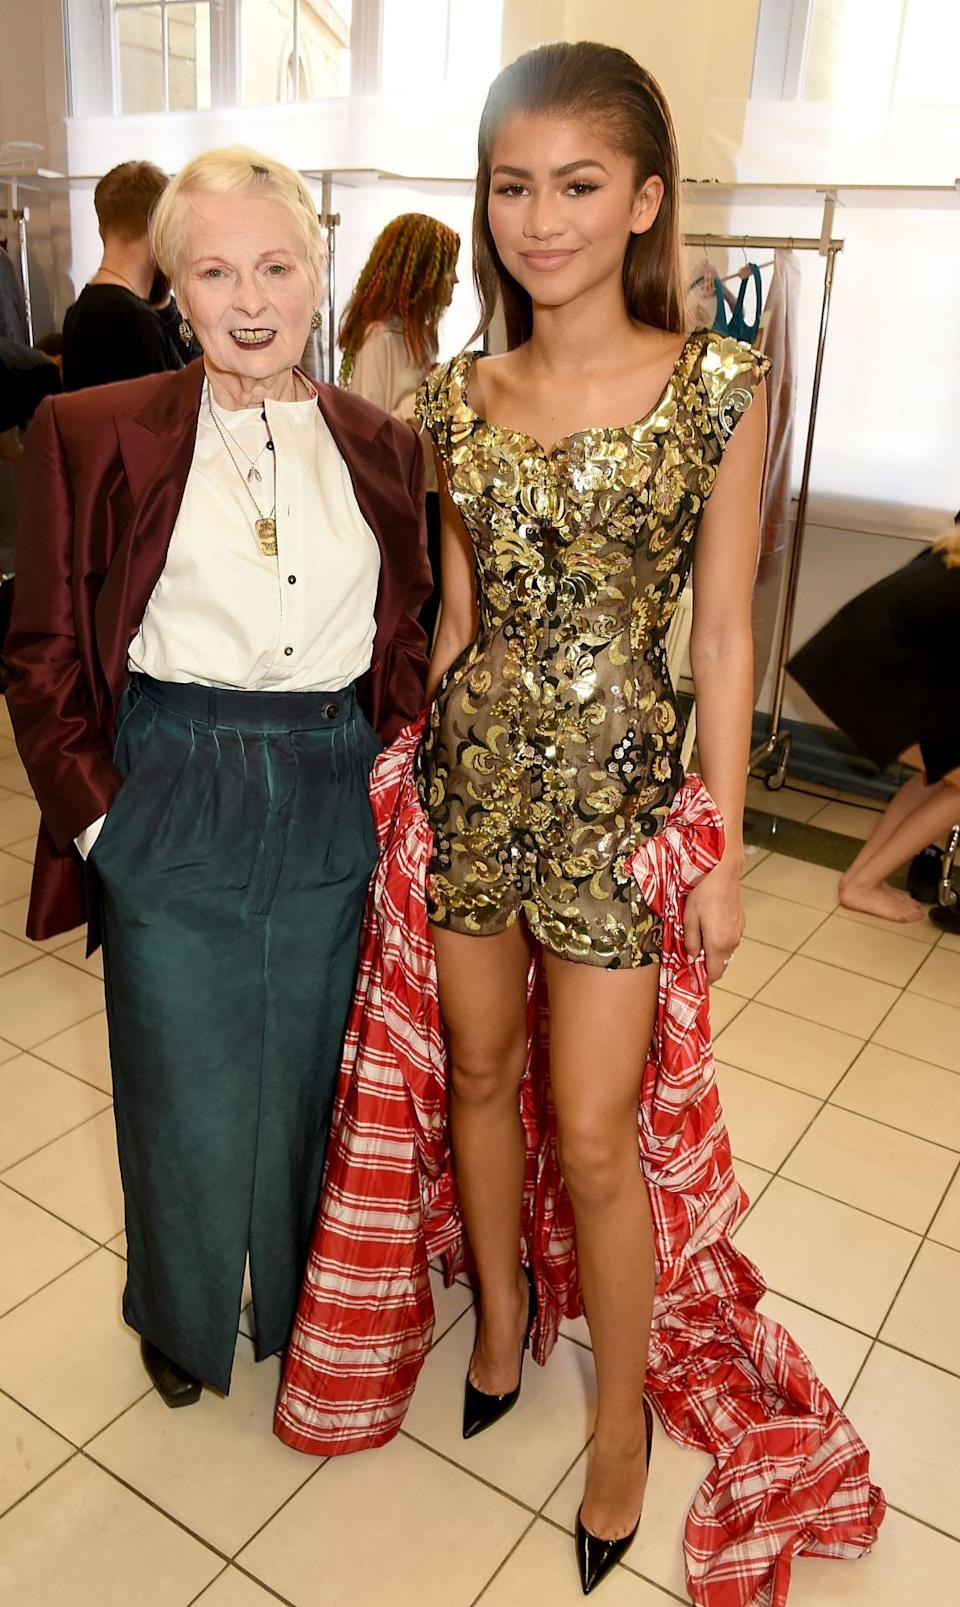 "<p>Backstage at Vivienne Westwood's Gold Label show in Paris (Red Label is in London), Zendaya wore the ""Fig"" dress, which is a mini dress and gown hybrid. What is that you ask? The fashion amalgam consists of a gold dress with a short hemline and a red and white tartan skirt attached at the hips with a long train. <br></p><p><i>Photo: Getty Images</i></p>"